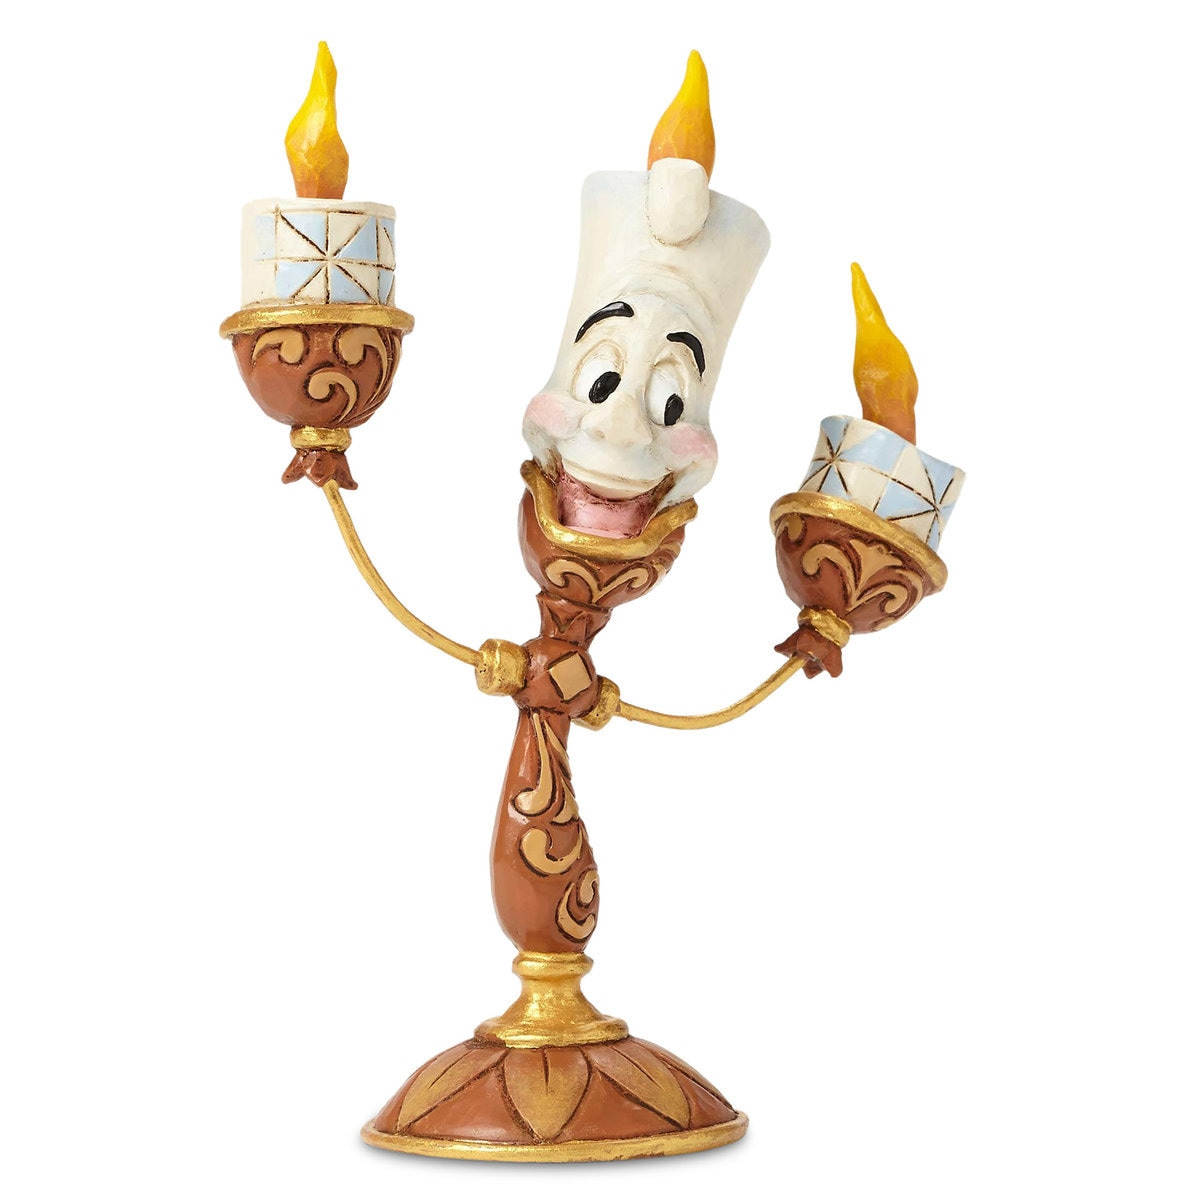 Lumiere Ooh La Figure By Jim Shore